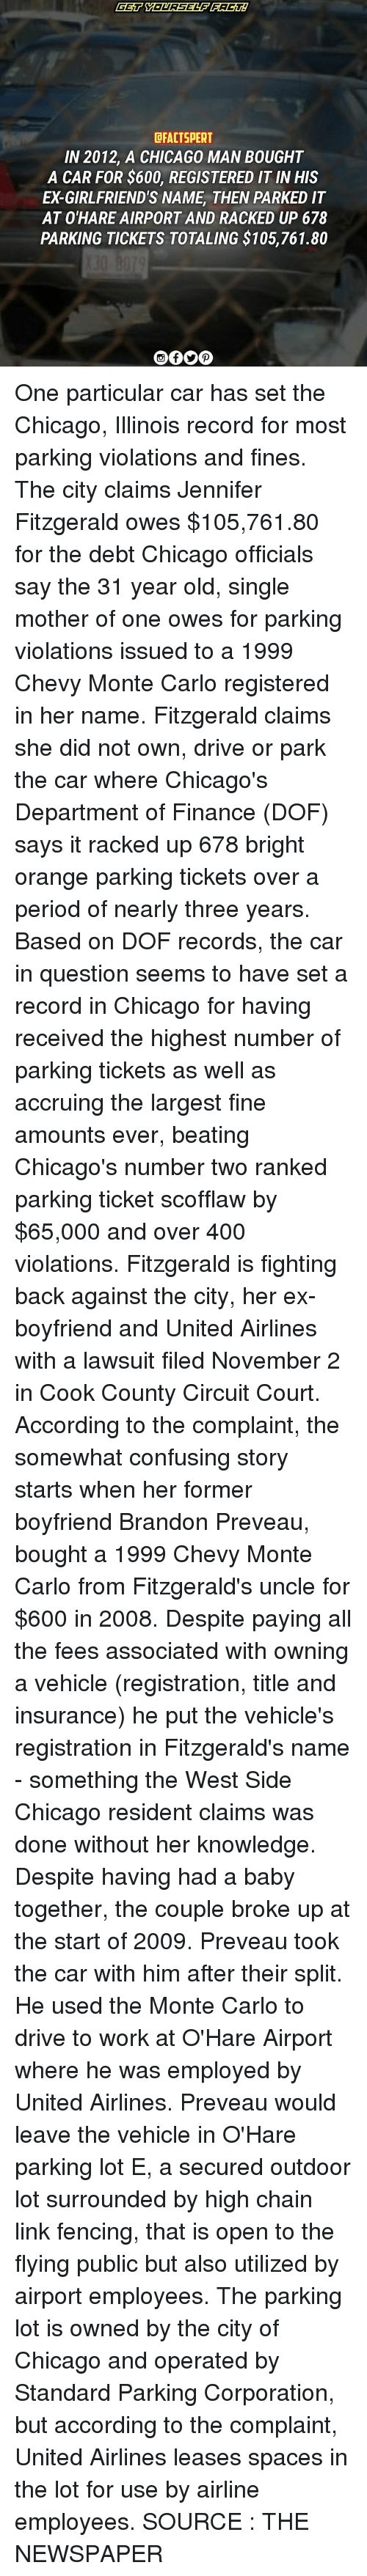 Chicago, Finance, and Memes: CFACTSPERT  IN 2012, A CHICAGO MAN BOUGHT  A CAR FOR $600, REGISTERED IT INHIS  ED GIRLFRIEND'S NAME THEN PARKED IT  AT O'HARE AIRPORT AND RACKED UP 678  PARKING TICKETS TOTALING $105,761.80 One particular car has set the Chicago, Illinois record for most parking violations and fines. The city claims Jennifer Fitzgerald owes $105,761.80 for the debt Chicago officials say the 31 year old, single mother of one owes for parking violations issued to a 1999 Chevy Monte Carlo registered in her name. Fitzgerald claims she did not own, drive or park the car where Chicago's Department of Finance (DOF) says it racked up 678 bright orange parking tickets over a period of nearly three years. Based on DOF records, the car in question seems to have set a record in Chicago for having received the highest number of parking tickets as well as accruing the largest fine amounts ever, beating Chicago's number two ranked parking ticket scofflaw by $65,000 and over 400 violations. Fitzgerald is fighting back against the city, her ex-boyfriend and United Airlines with a lawsuit filed November 2 in Cook County Circuit Court. According to the complaint, the somewhat confusing story starts when her former boyfriend Brandon Preveau, bought a 1999 Chevy Monte Carlo from Fitzgerald's uncle for $600 in 2008. Despite paying all the fees associated with owning a vehicle (registration, title and insurance) he put the vehicle's registration in Fitzgerald's name - something the West Side Chicago resident claims was done without her knowledge. Despite having had a baby together, the couple broke up at the start of 2009. Preveau took the car with him after their split. He used the Monte Carlo to drive to work at O'Hare Airport where he was employed by United Airlines. Preveau would leave the vehicle in O'Hare parking lot E, a secured outdoor lot surrounded by high chain link fencing, that is open to the flying public but also utilized by airport employees. The parking lot i